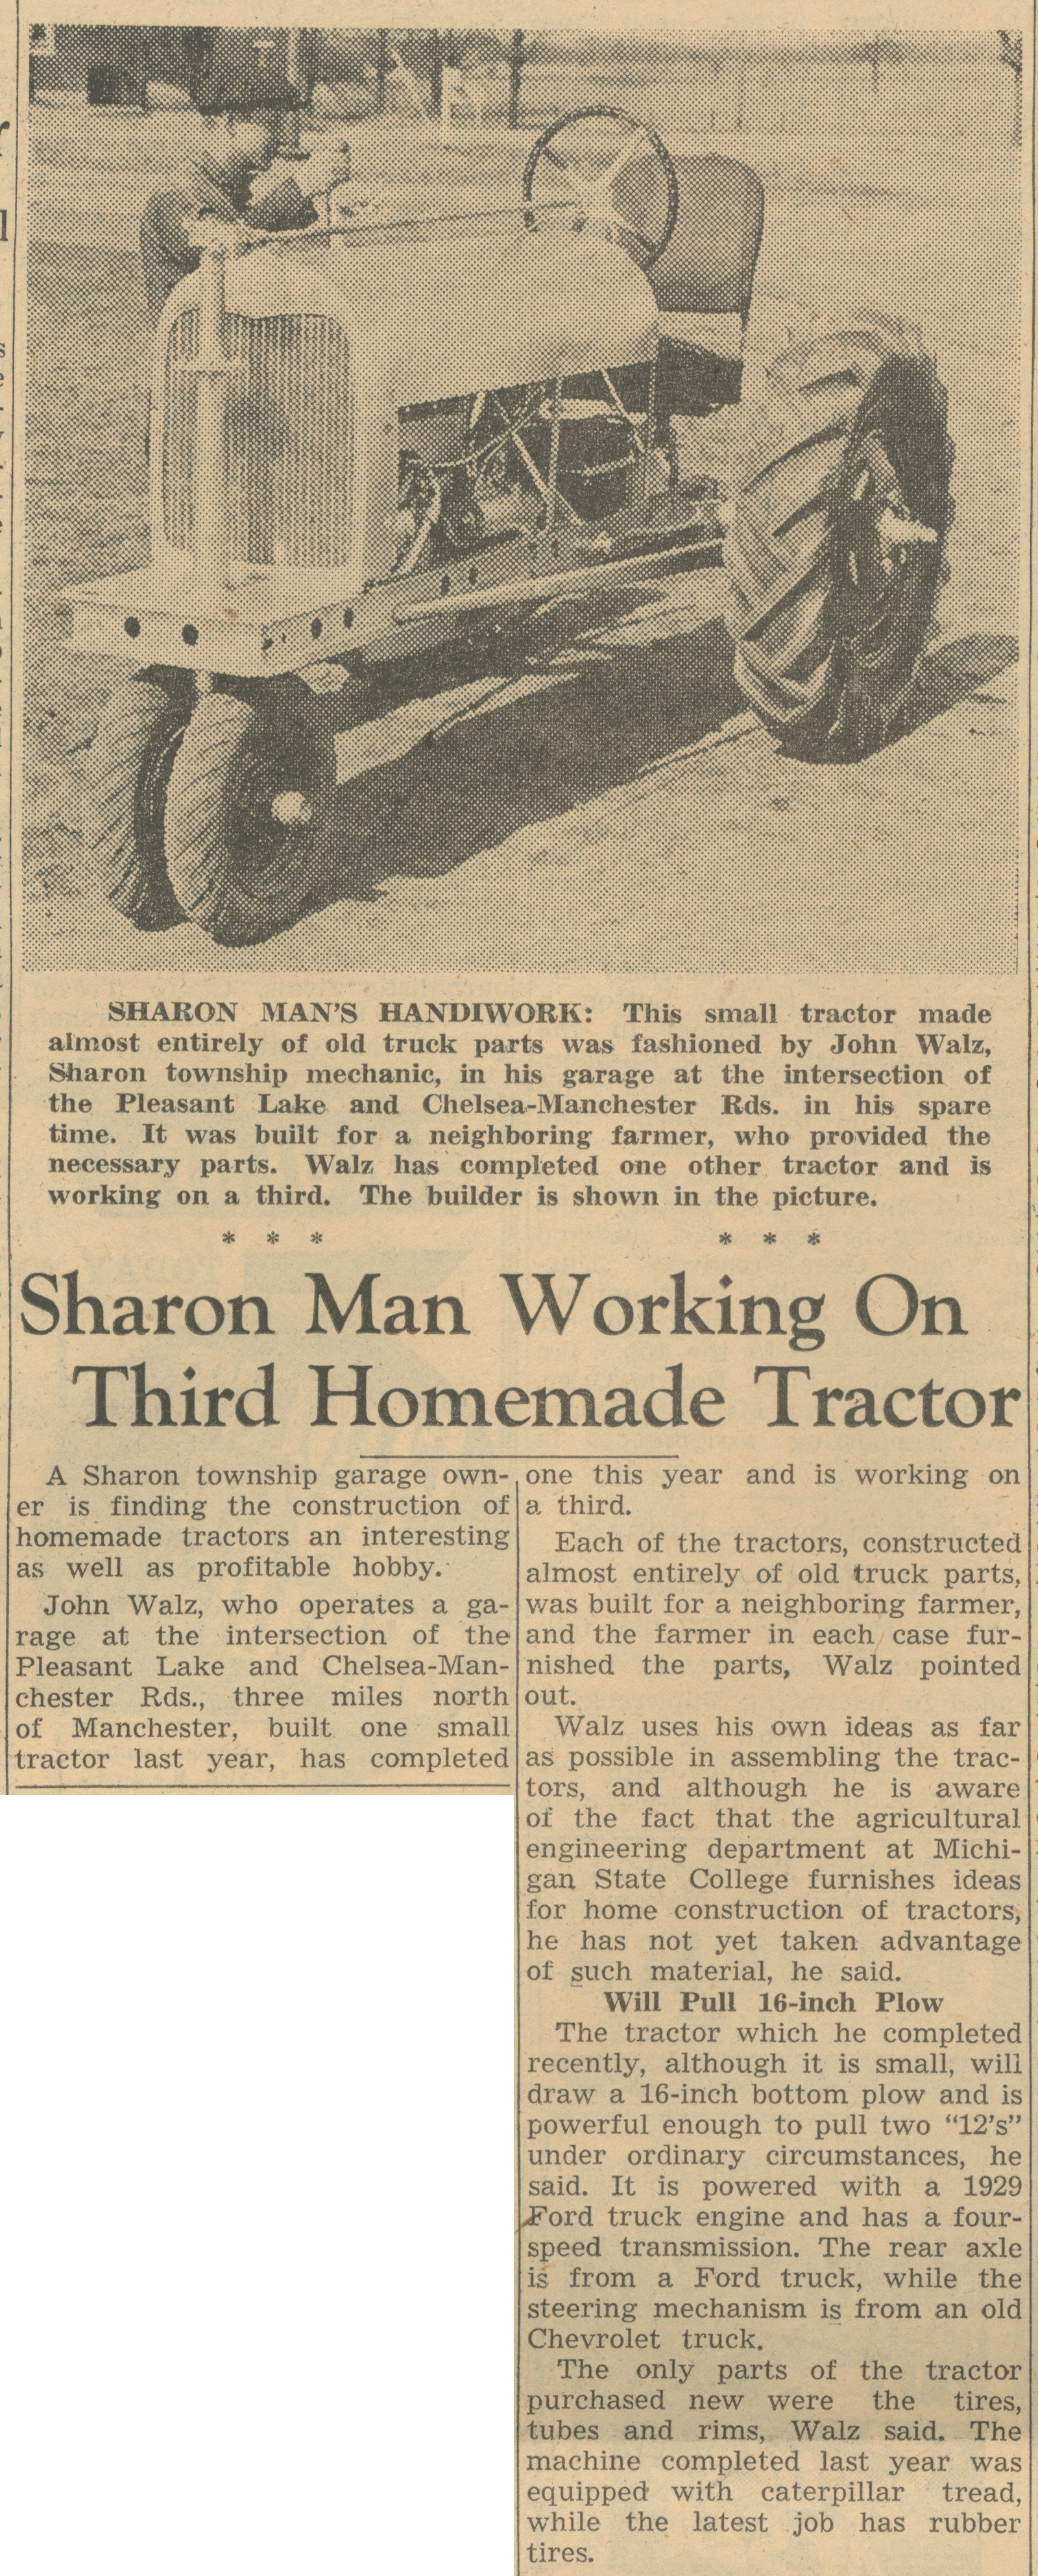 Sharon Man Working On Third Homemade Tractor image